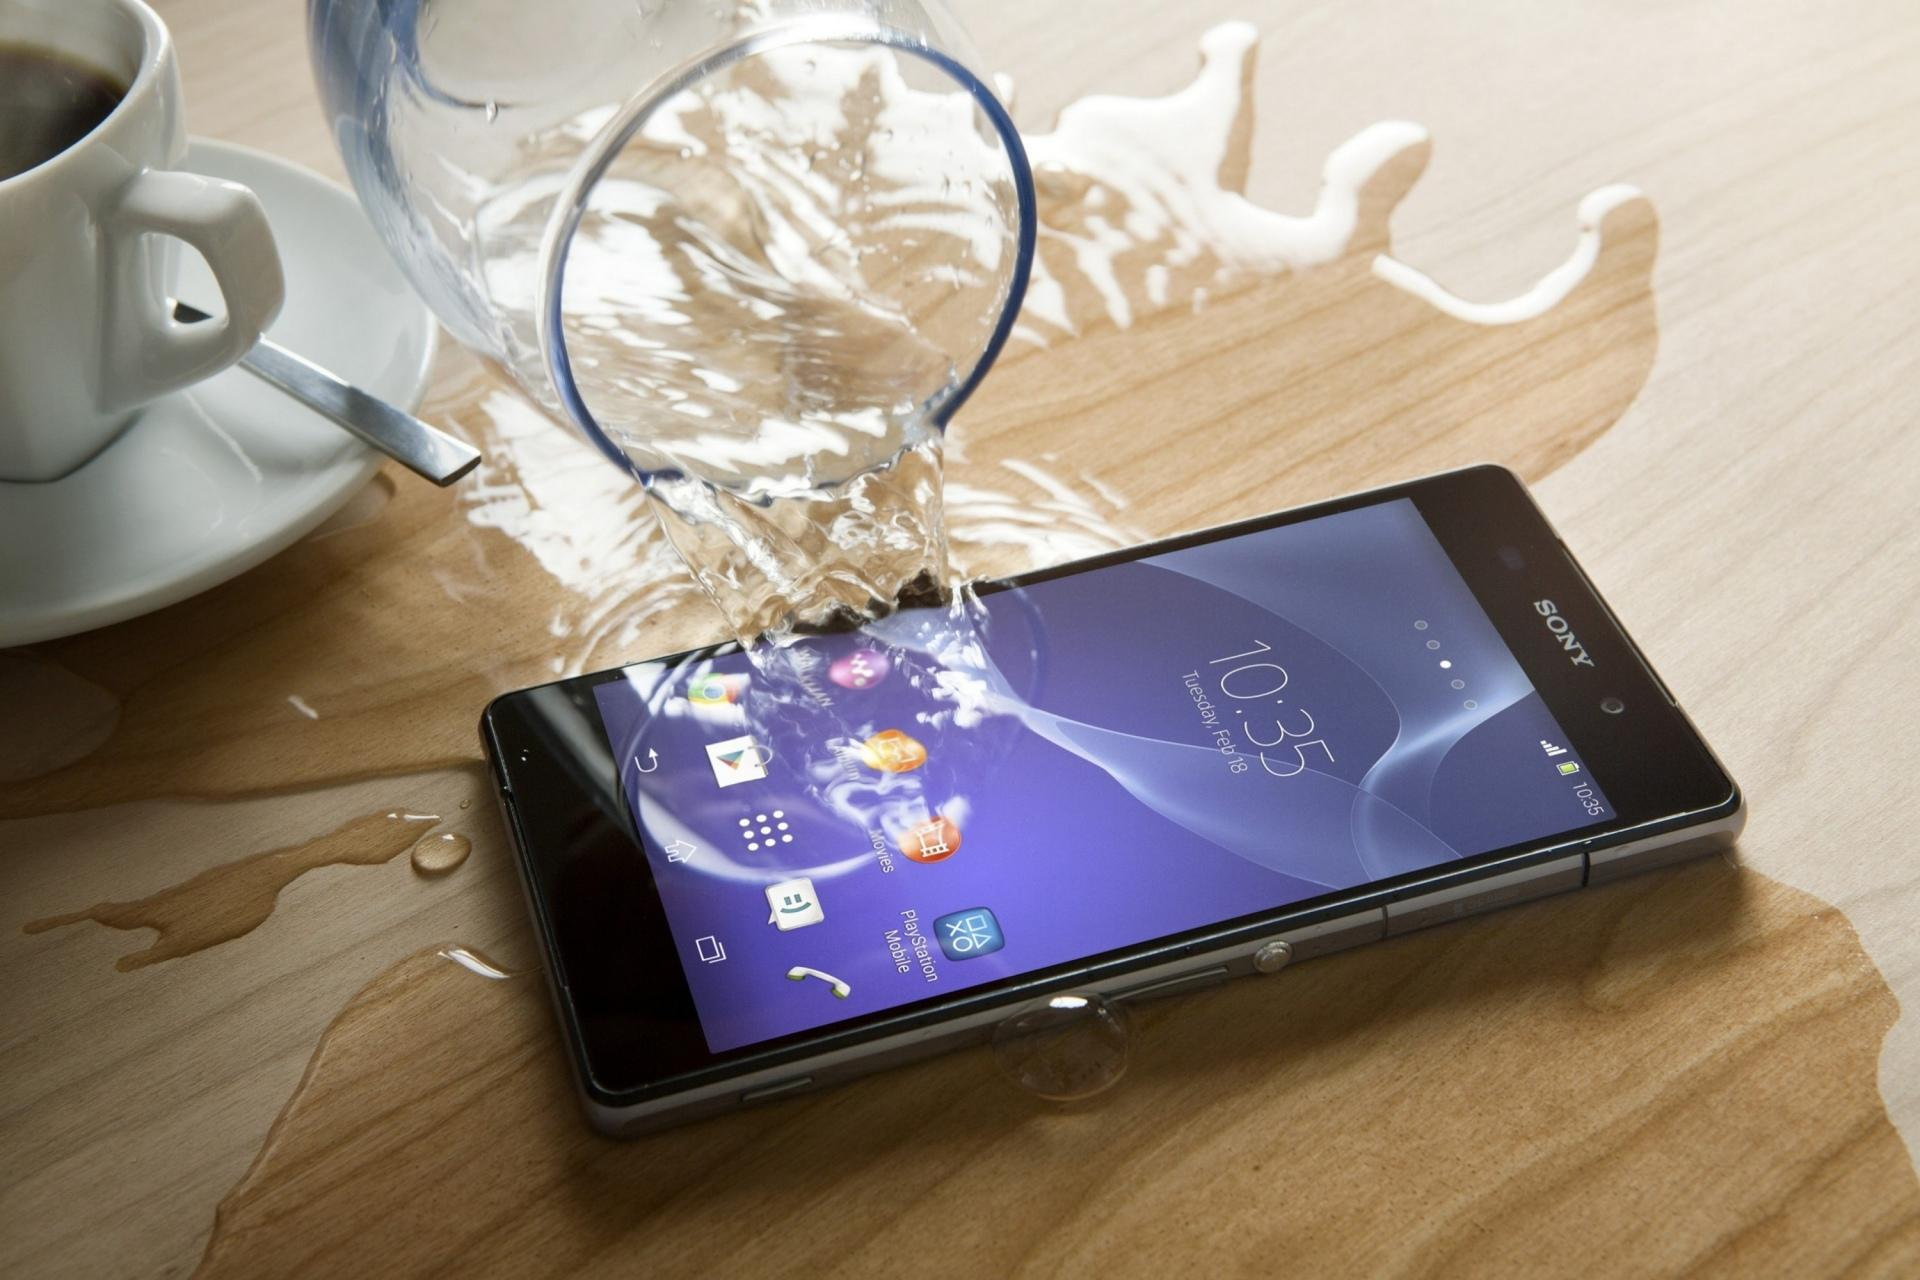 Xperia video recovery